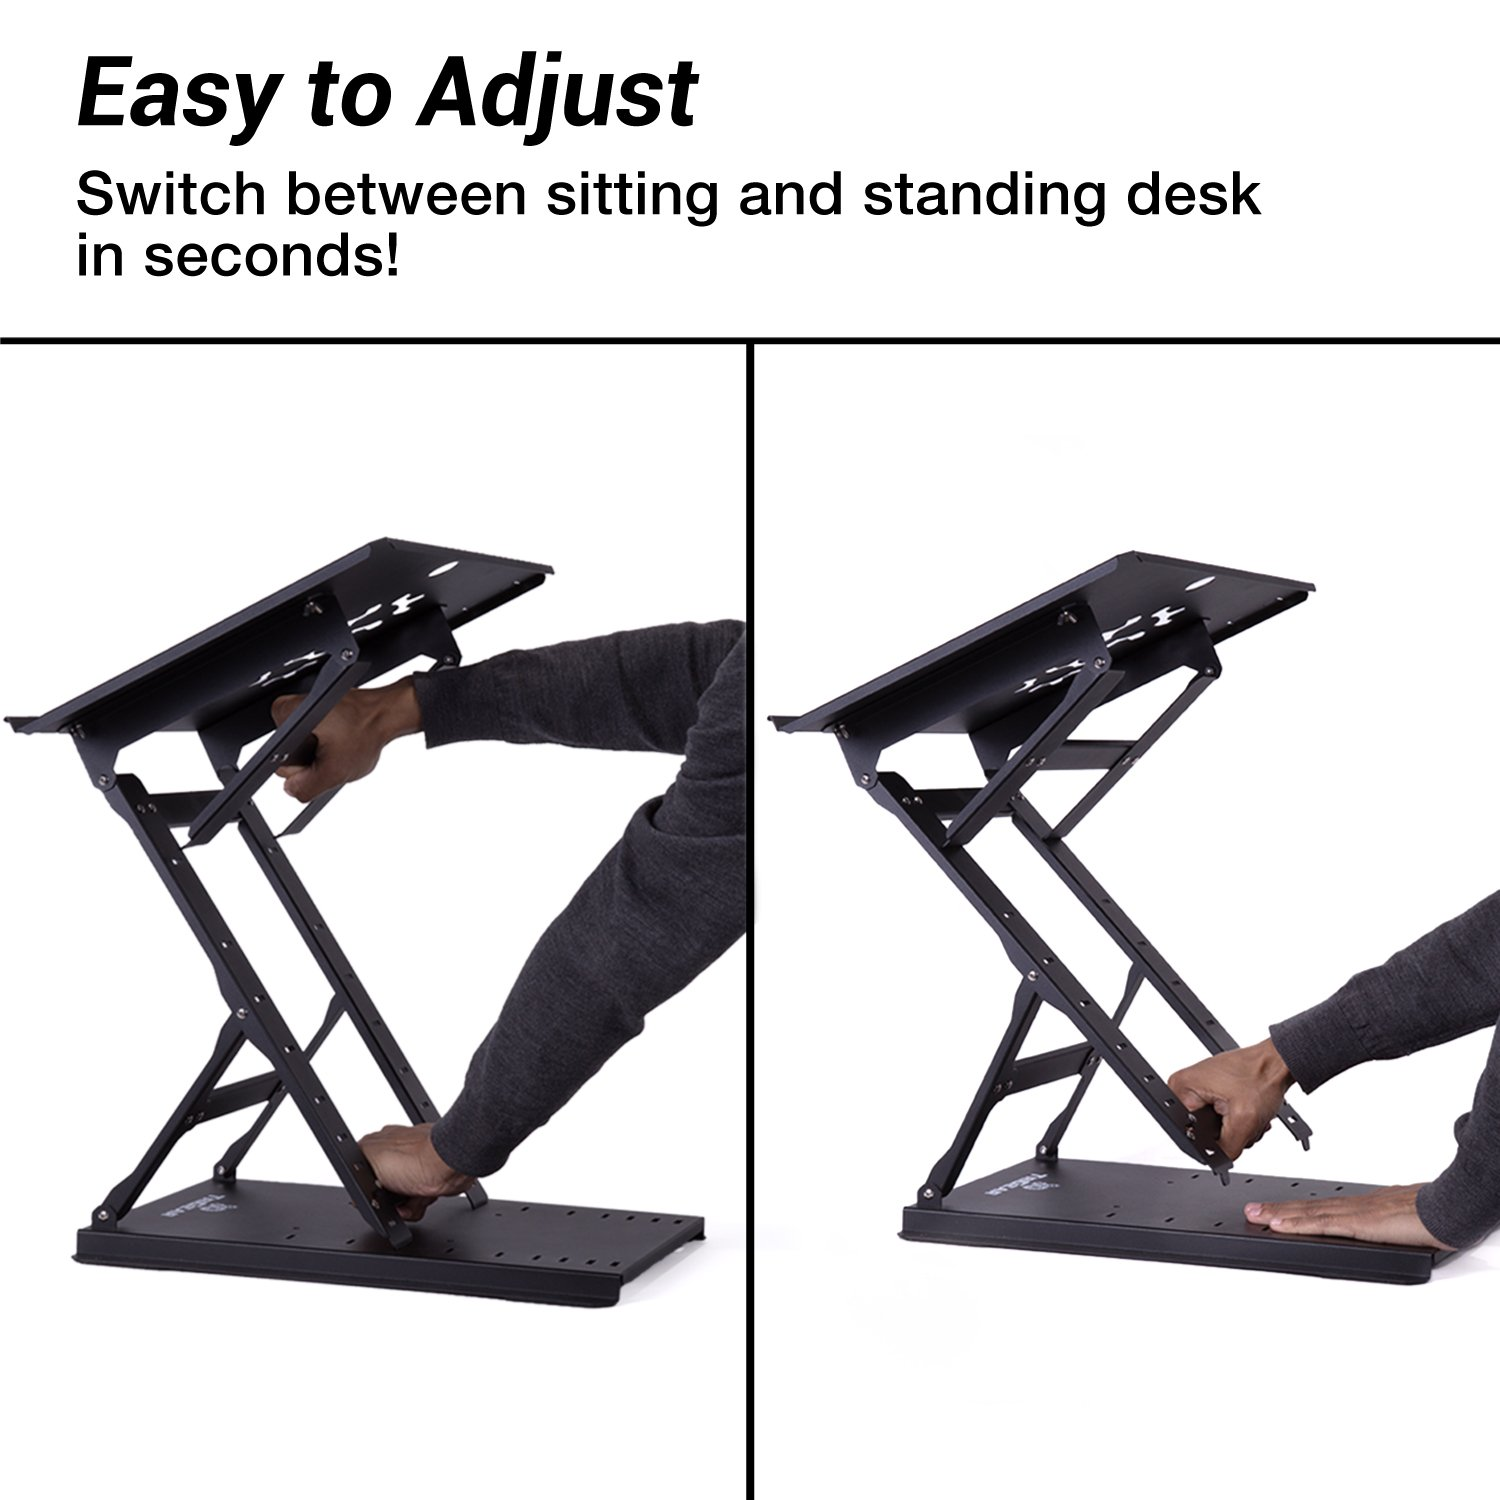 Amazon.com : TriGear Premier 81 Adjustable Height \u0026 Angle Options ...